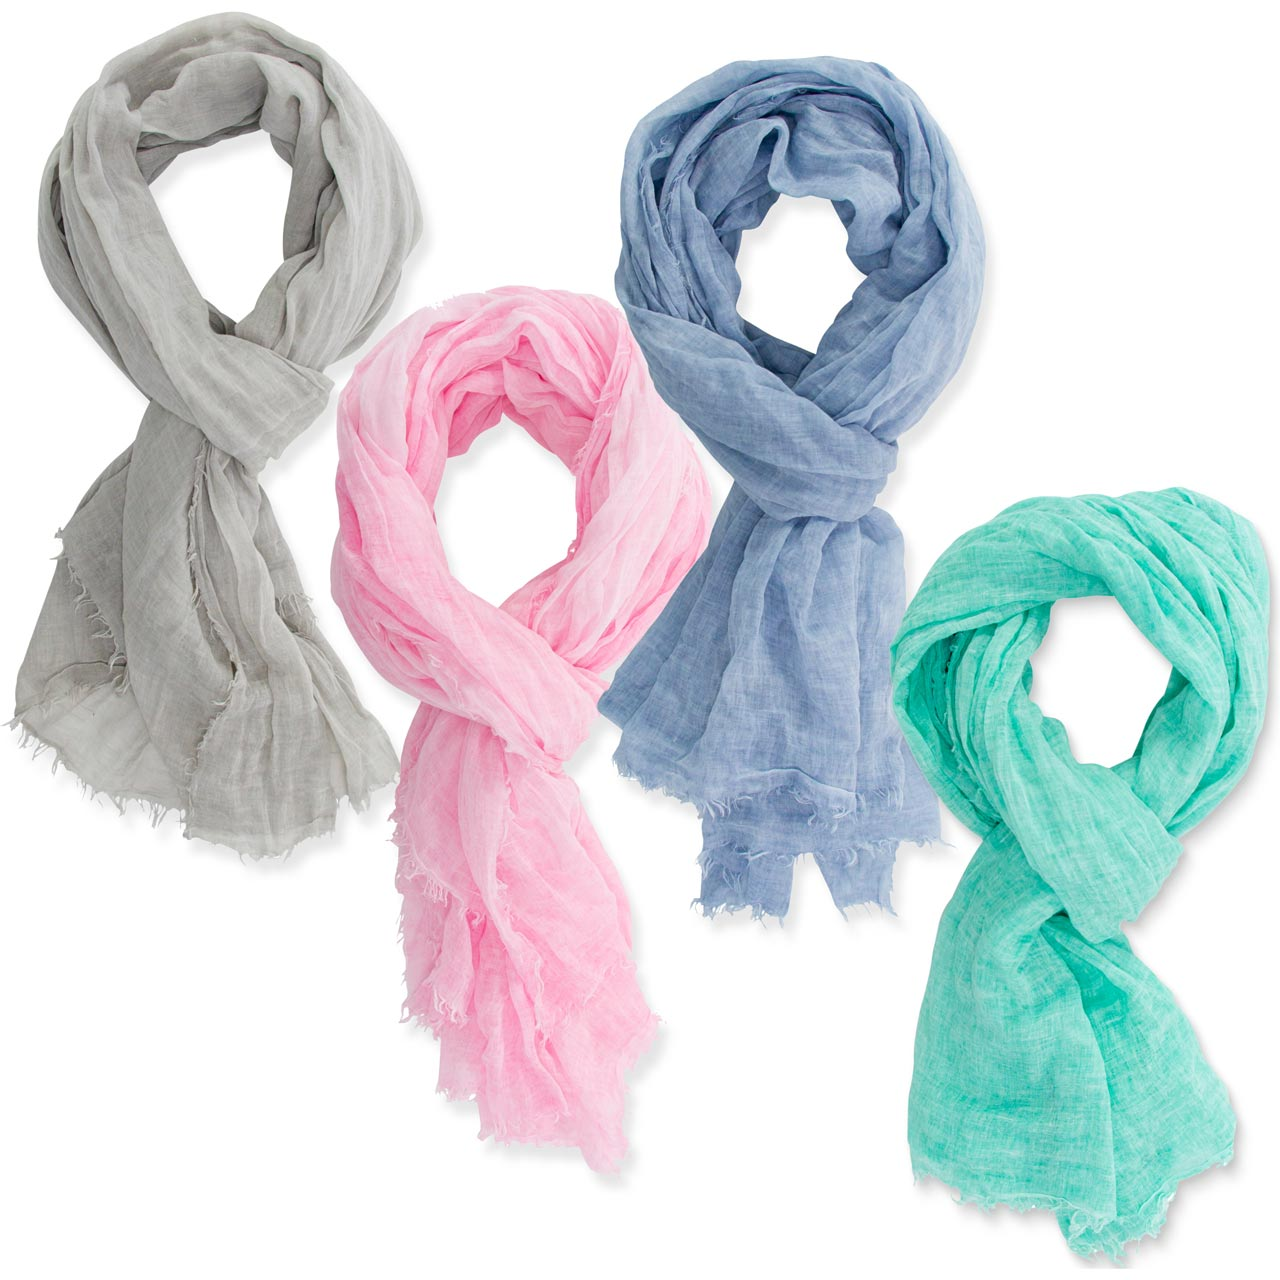 Pastel Scarves | The Design Gift Shop